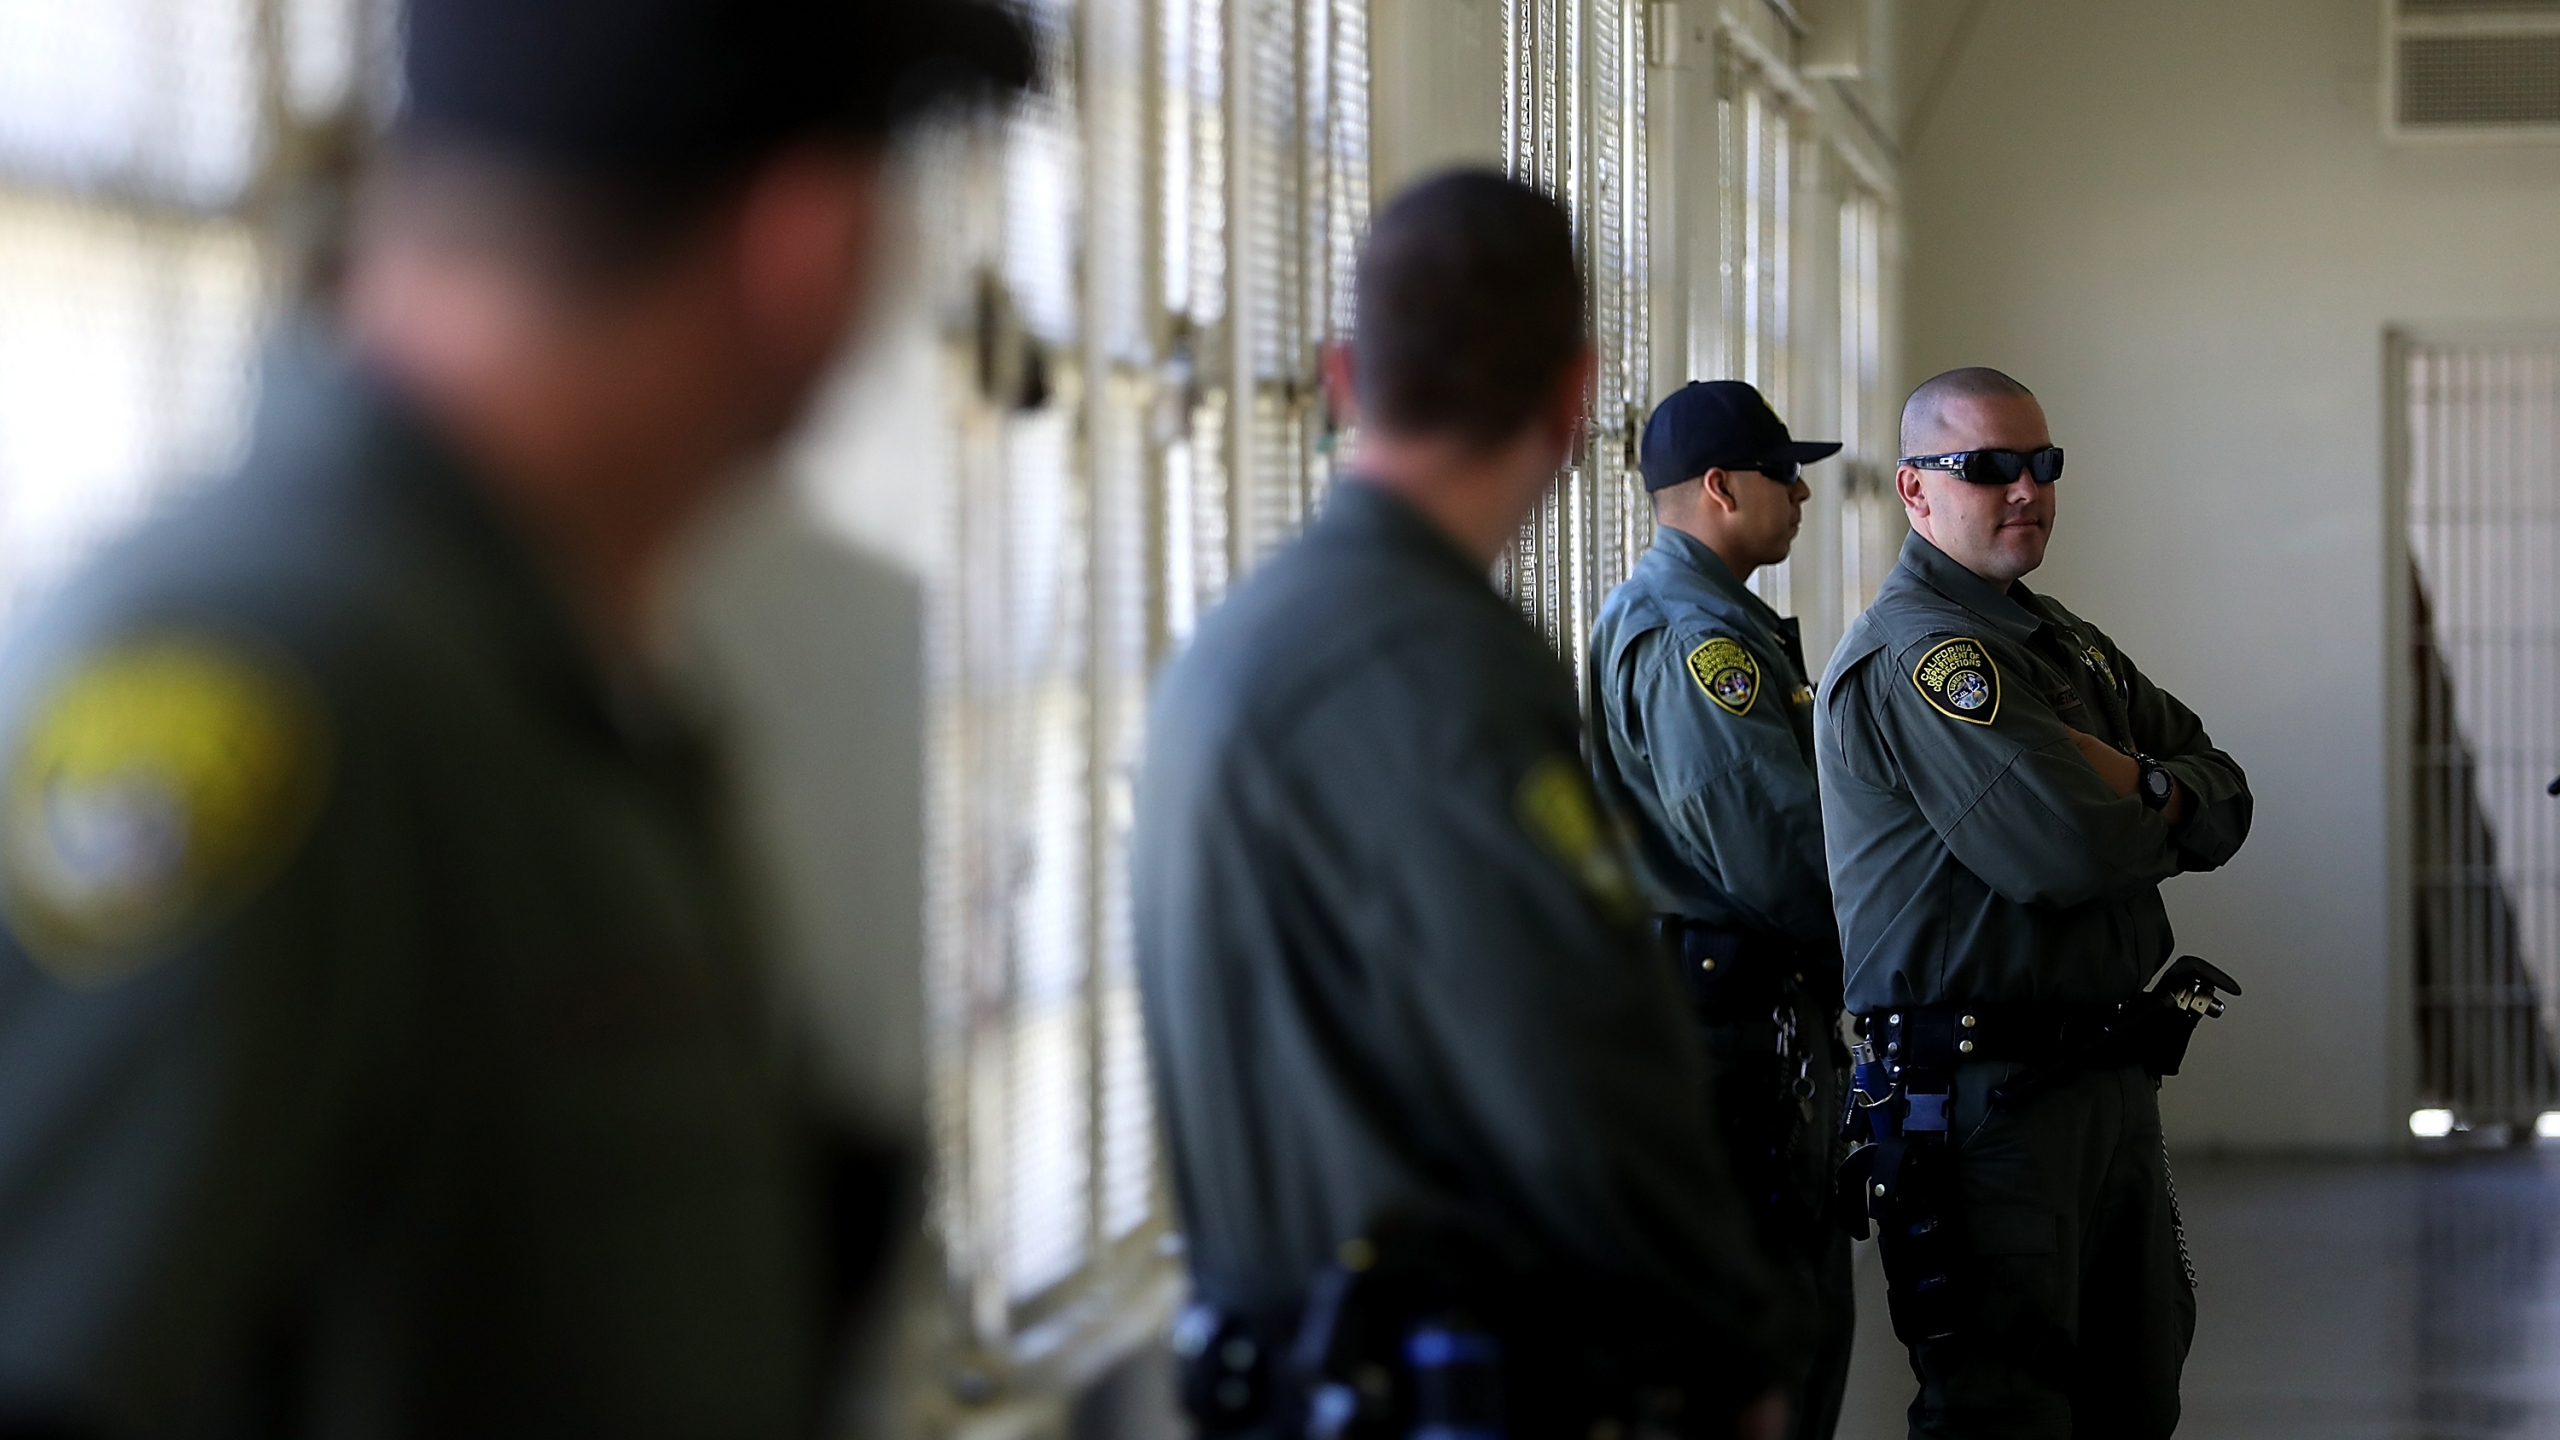 California Department of Corrections and Rehabilitation officers stand guard at San Quentin State Prison's death row adjustment center on Aug. 15, 2016 in San Quentin. (Justin Sullivan/Getty Images)